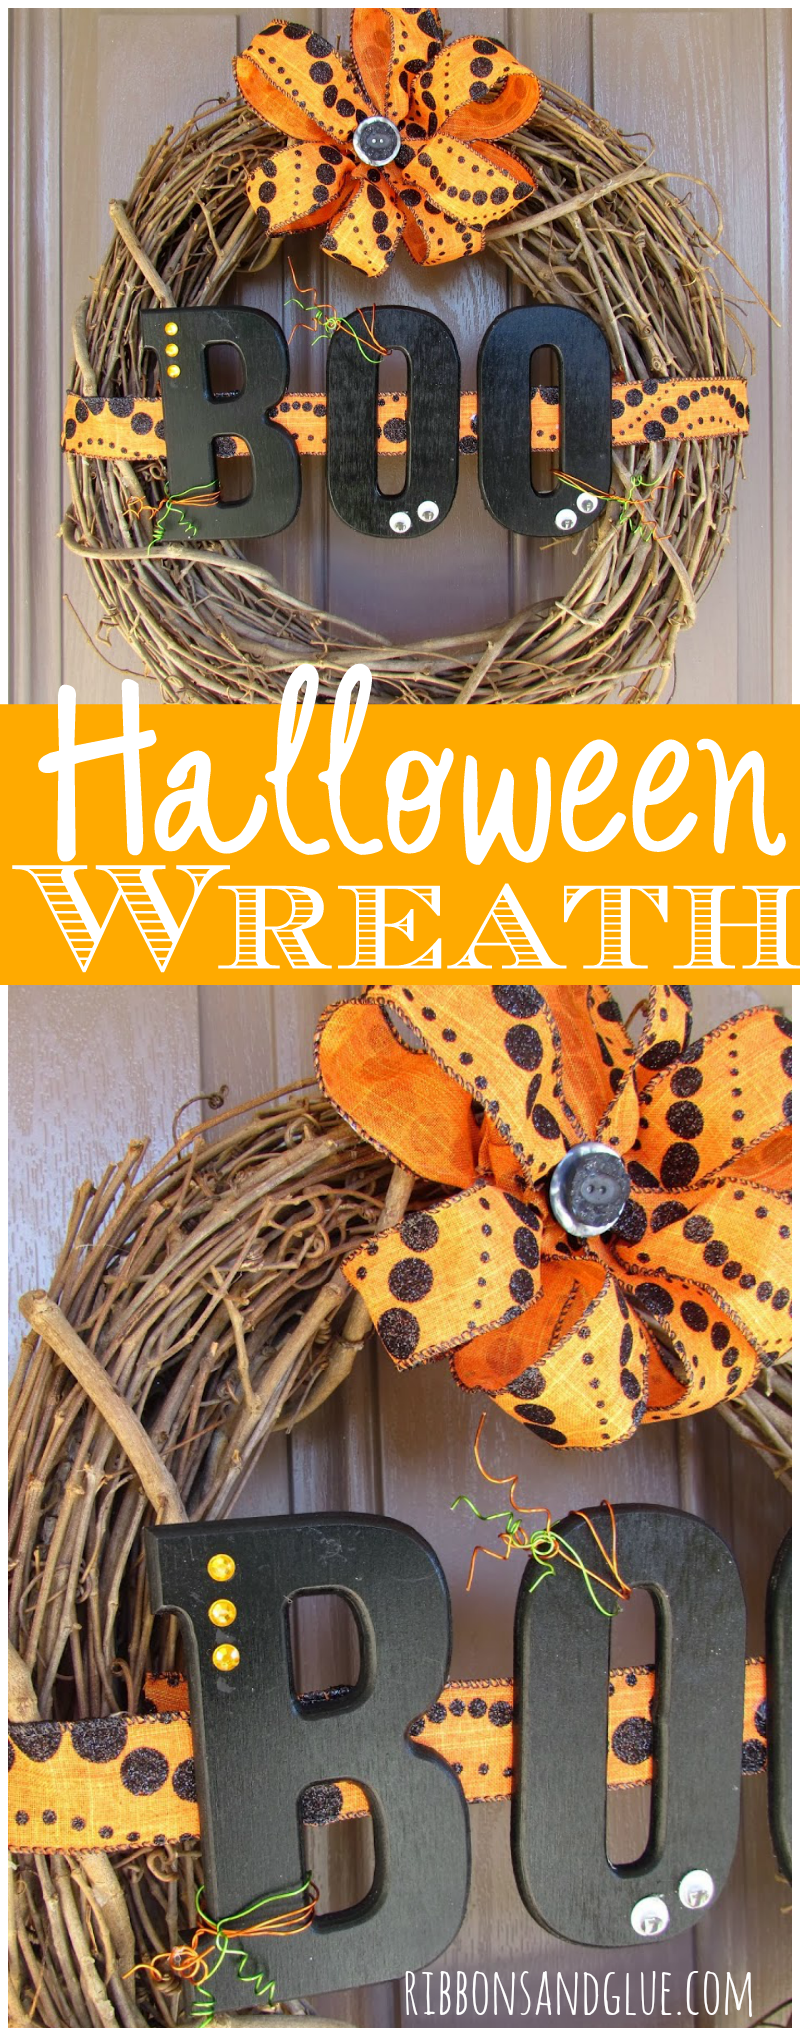 Halloween Boo Wreath made from a grapevine wreath and Halloween ribbon. Painted wood BOO letters make it spooky cute too!